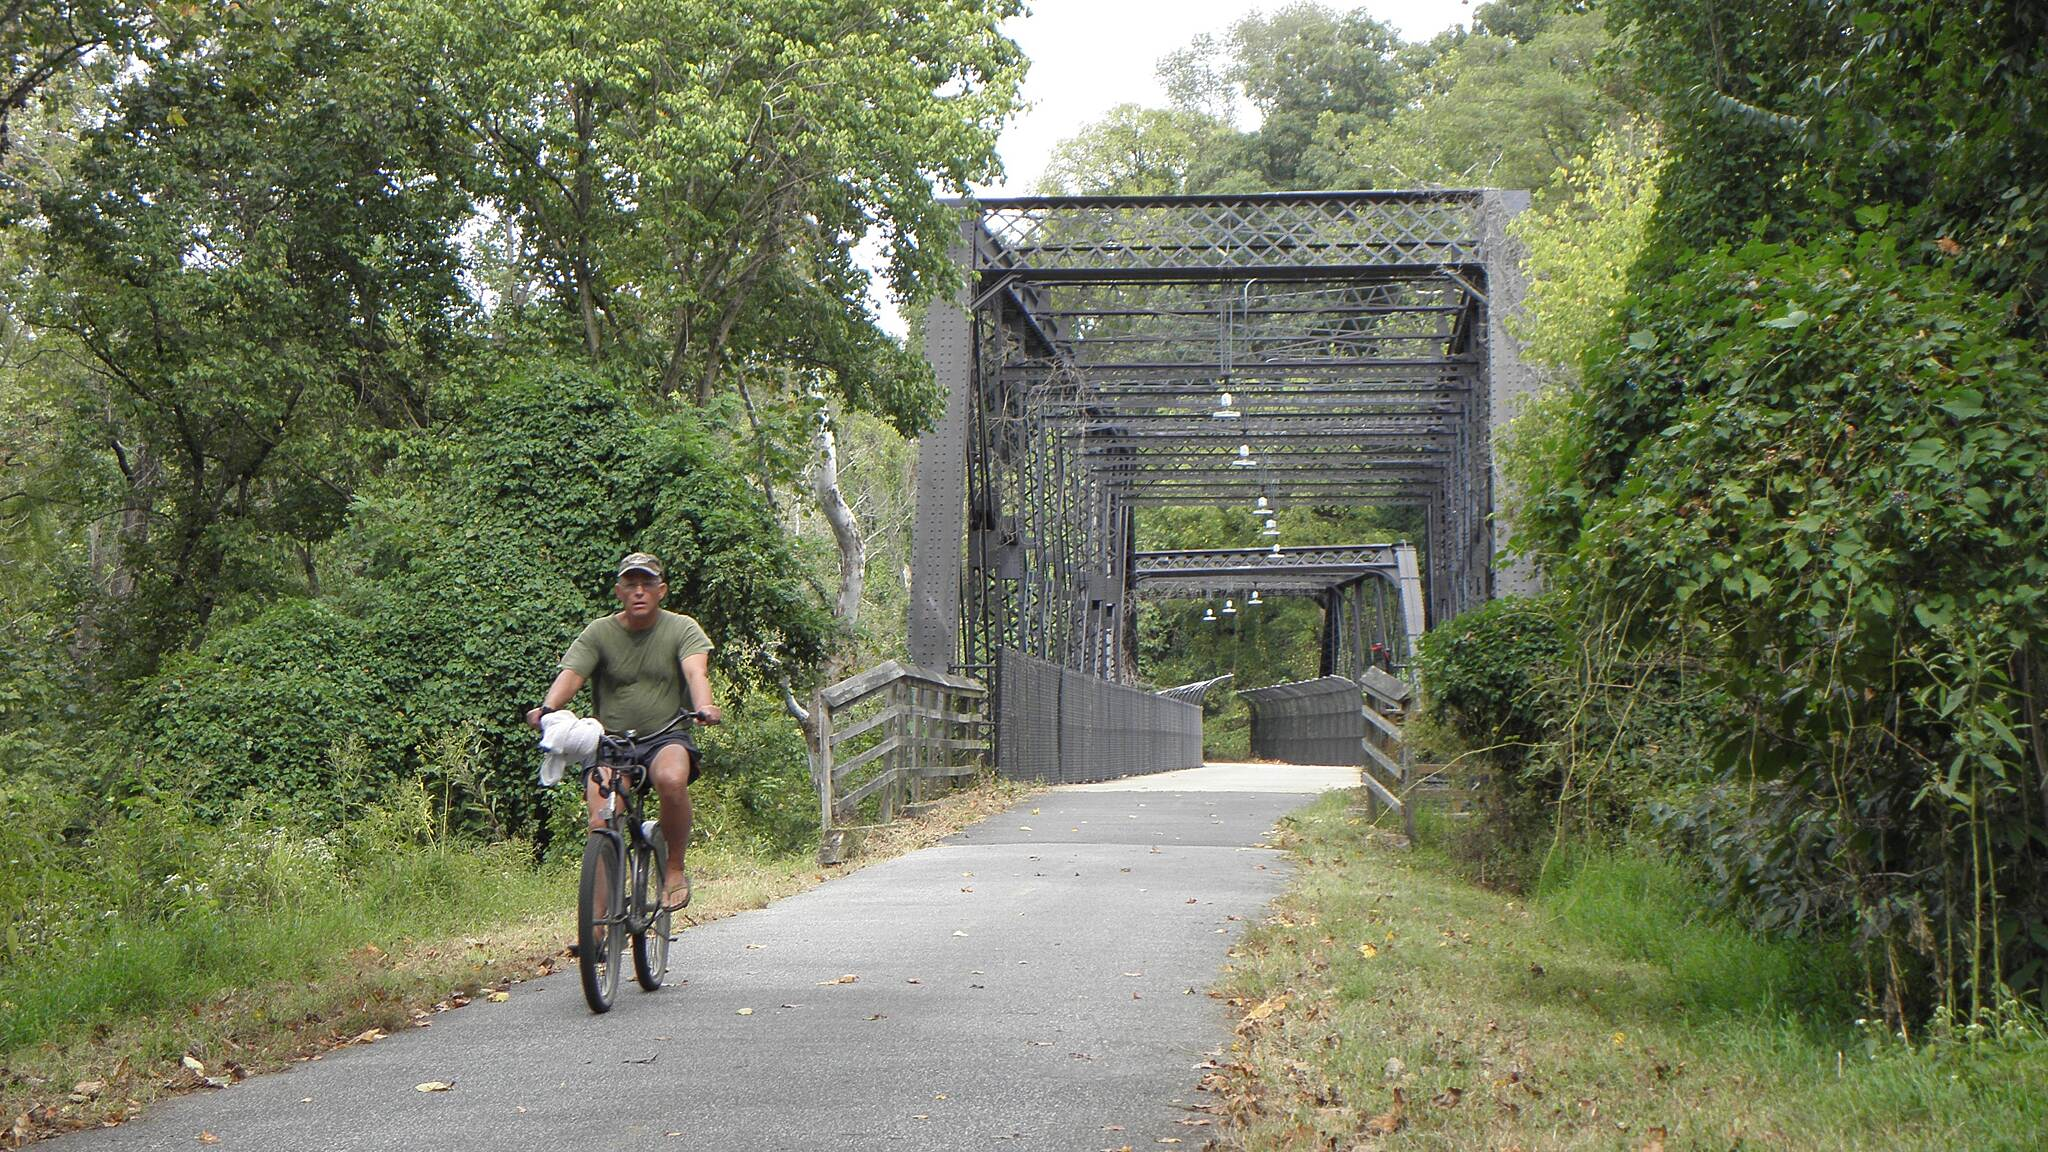 Capital Crescent Trail Bridges over C & O Canal and Canal Road.